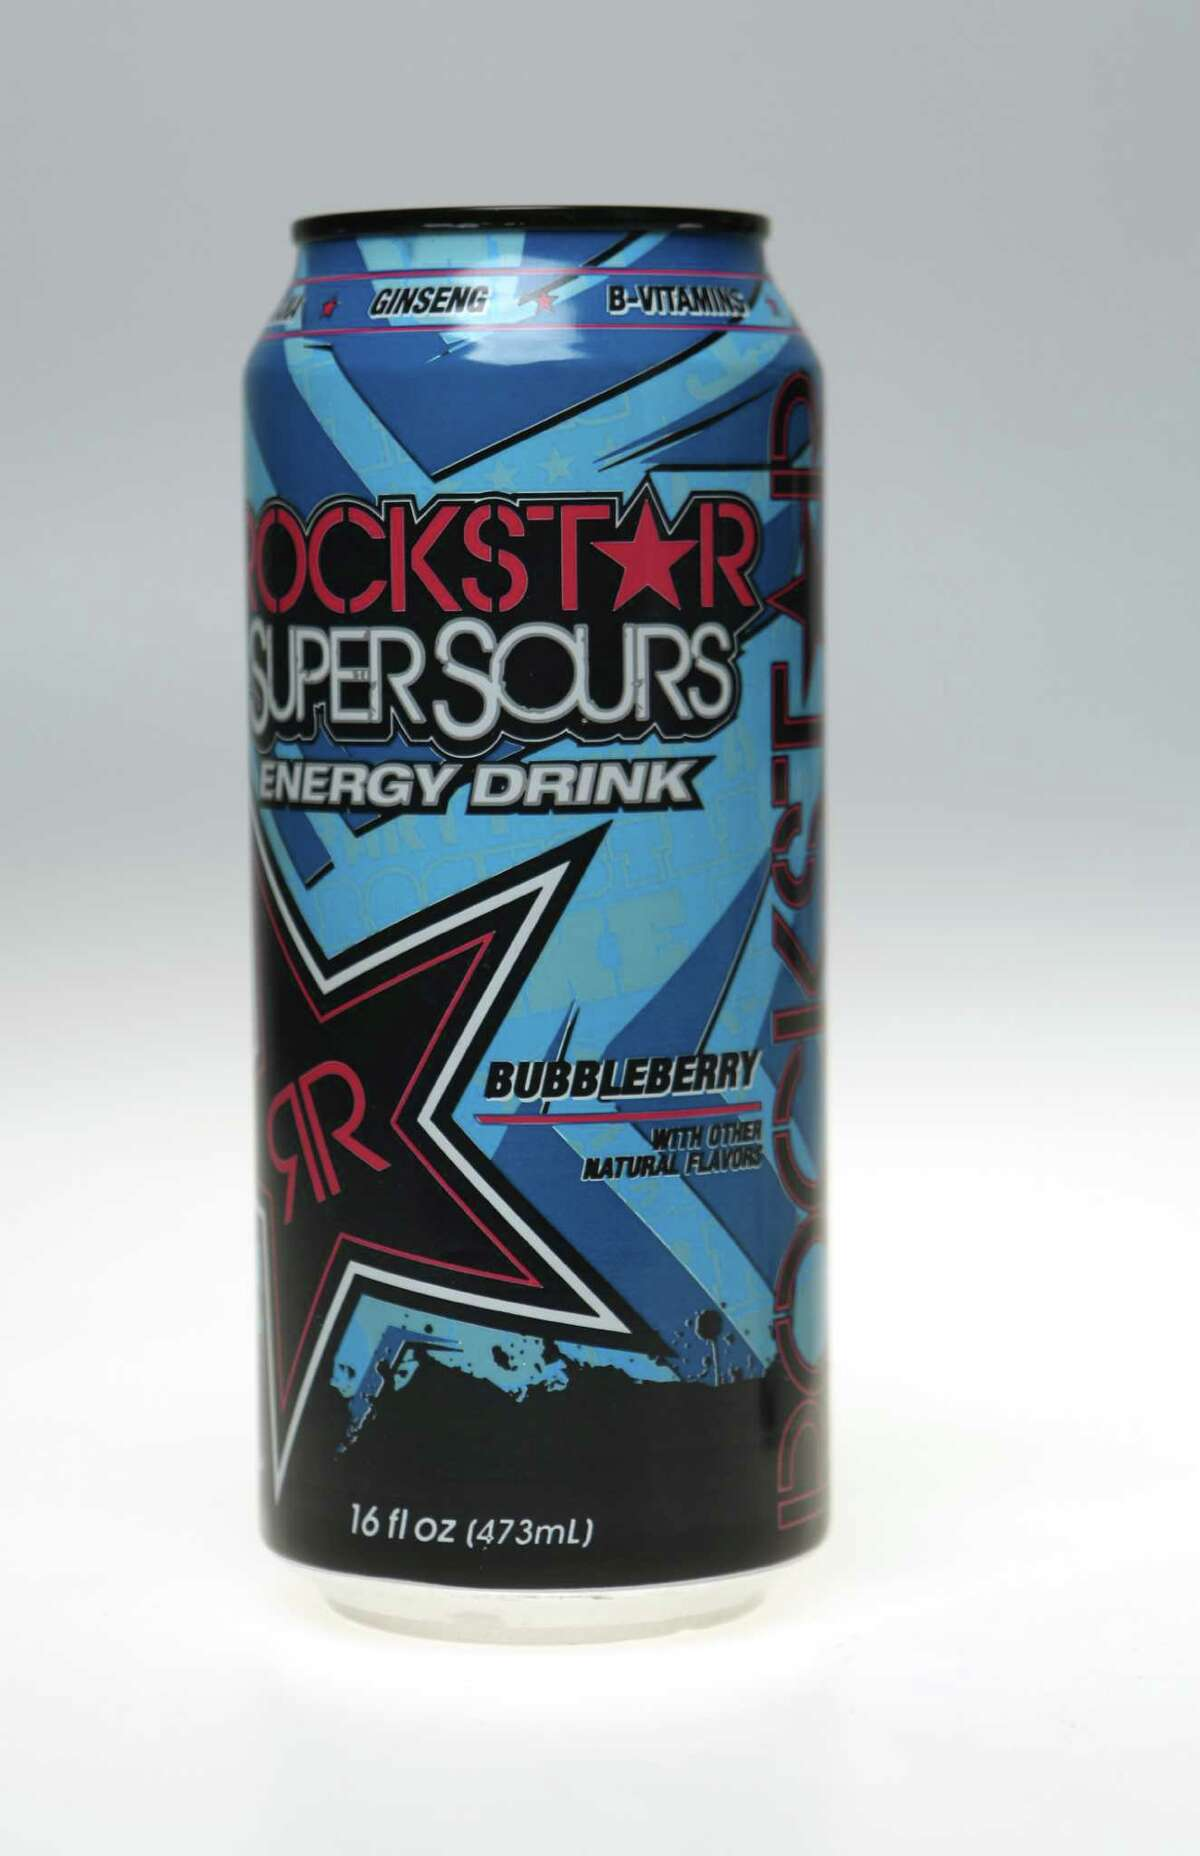 Energy drinks are a well-known product for people seeking an energy boost. Regular Rockstar drinks have 160 mg of caffeine per can, but products like the Rockstar Super Sours amp it up to 240 mg per can.